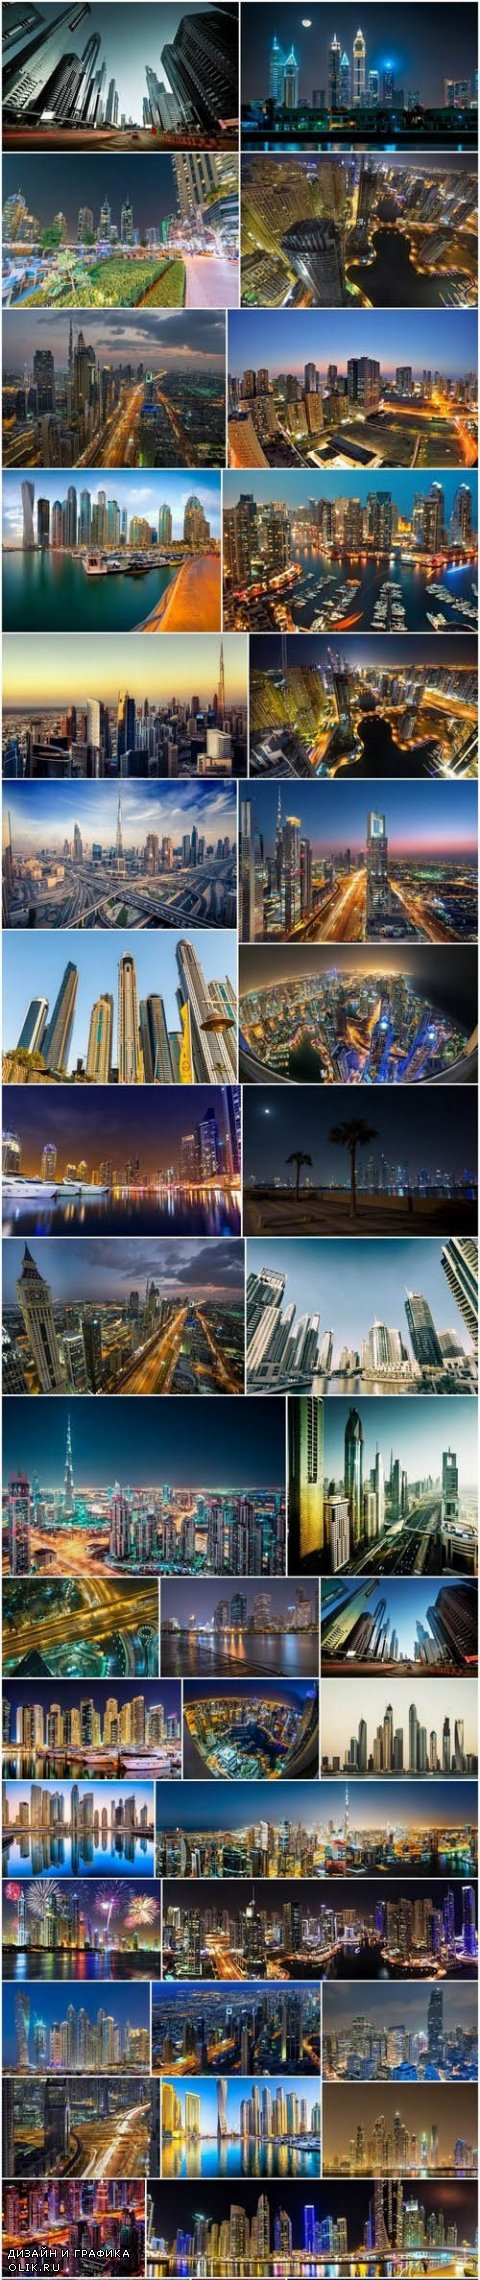 Dubai Travel - Skyscrapers, Set of 42xUHQ JPEG Professional Stock Images